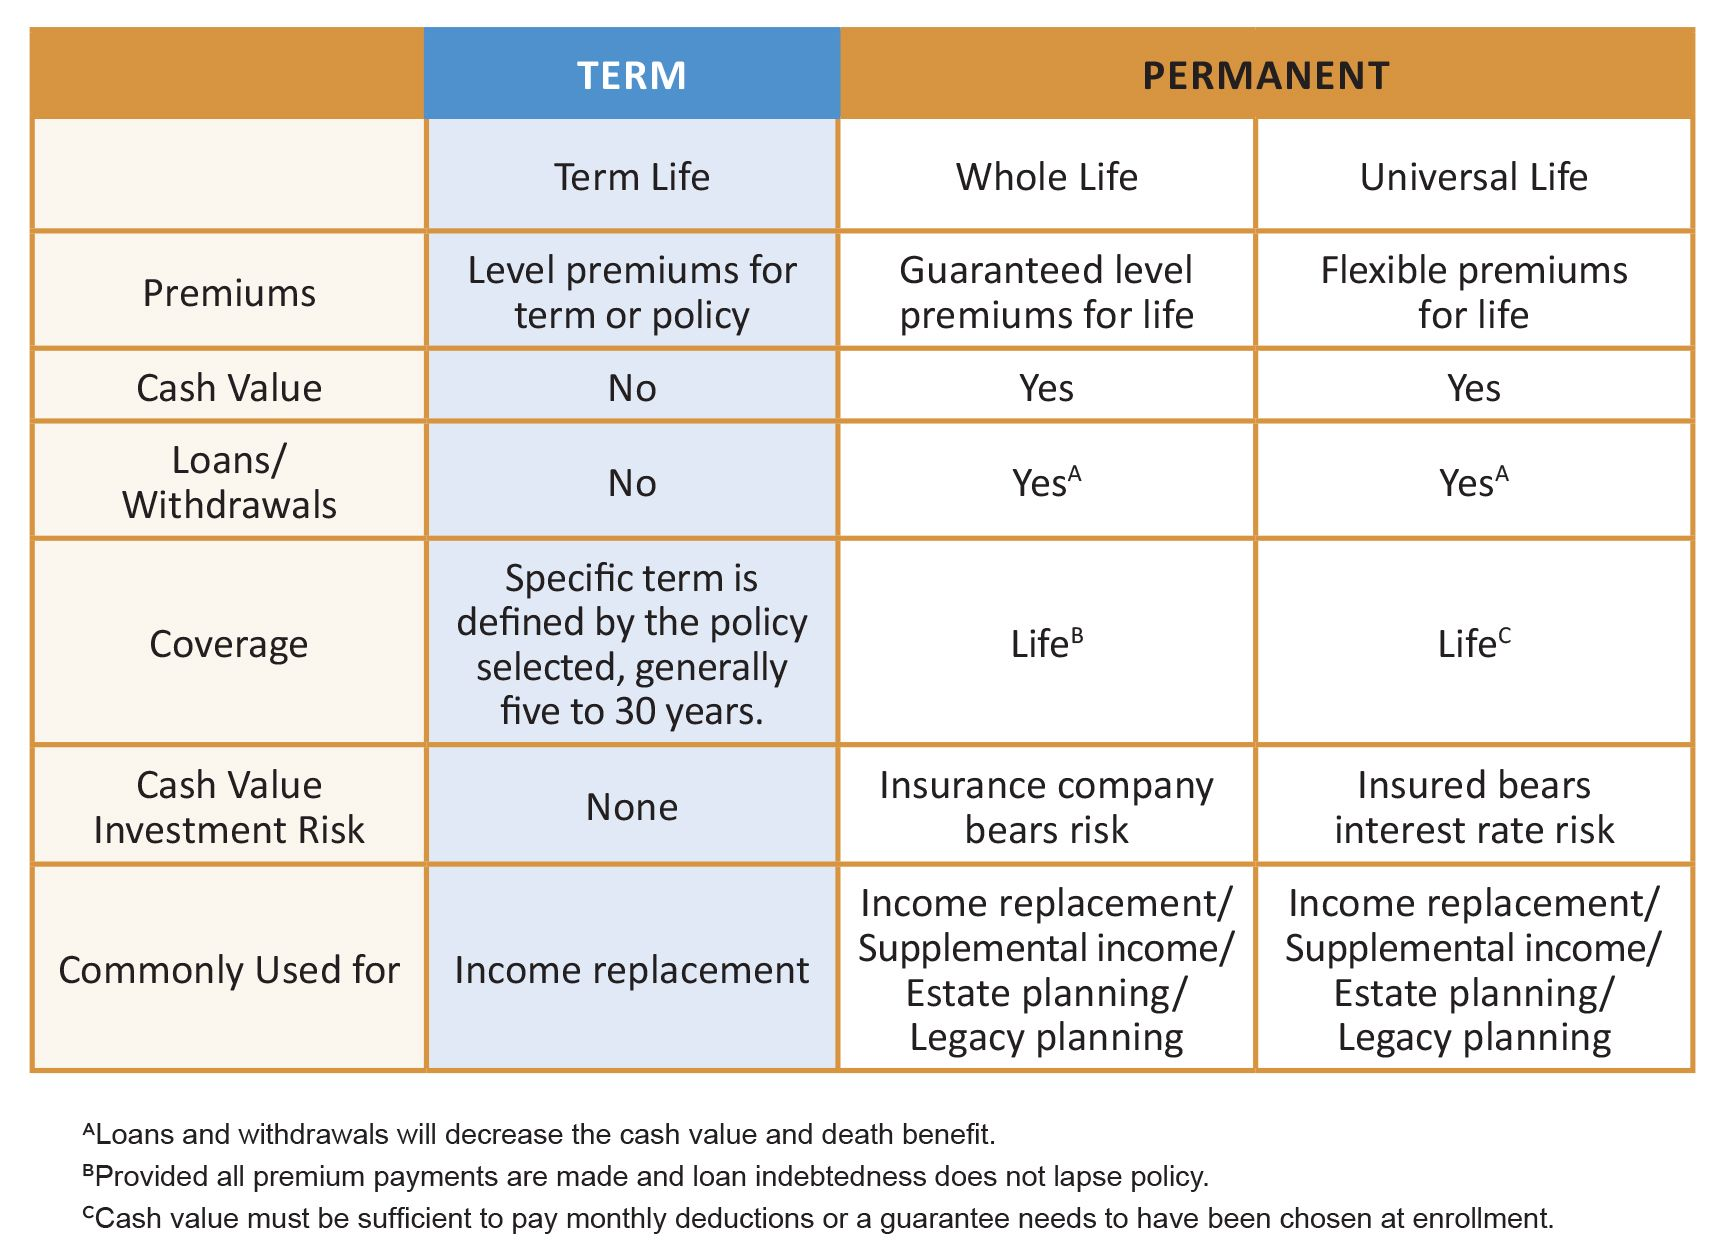 Whole Life Insurance And Estate Planning Whole Life Insurance Estate Planning Life Insurance Premium